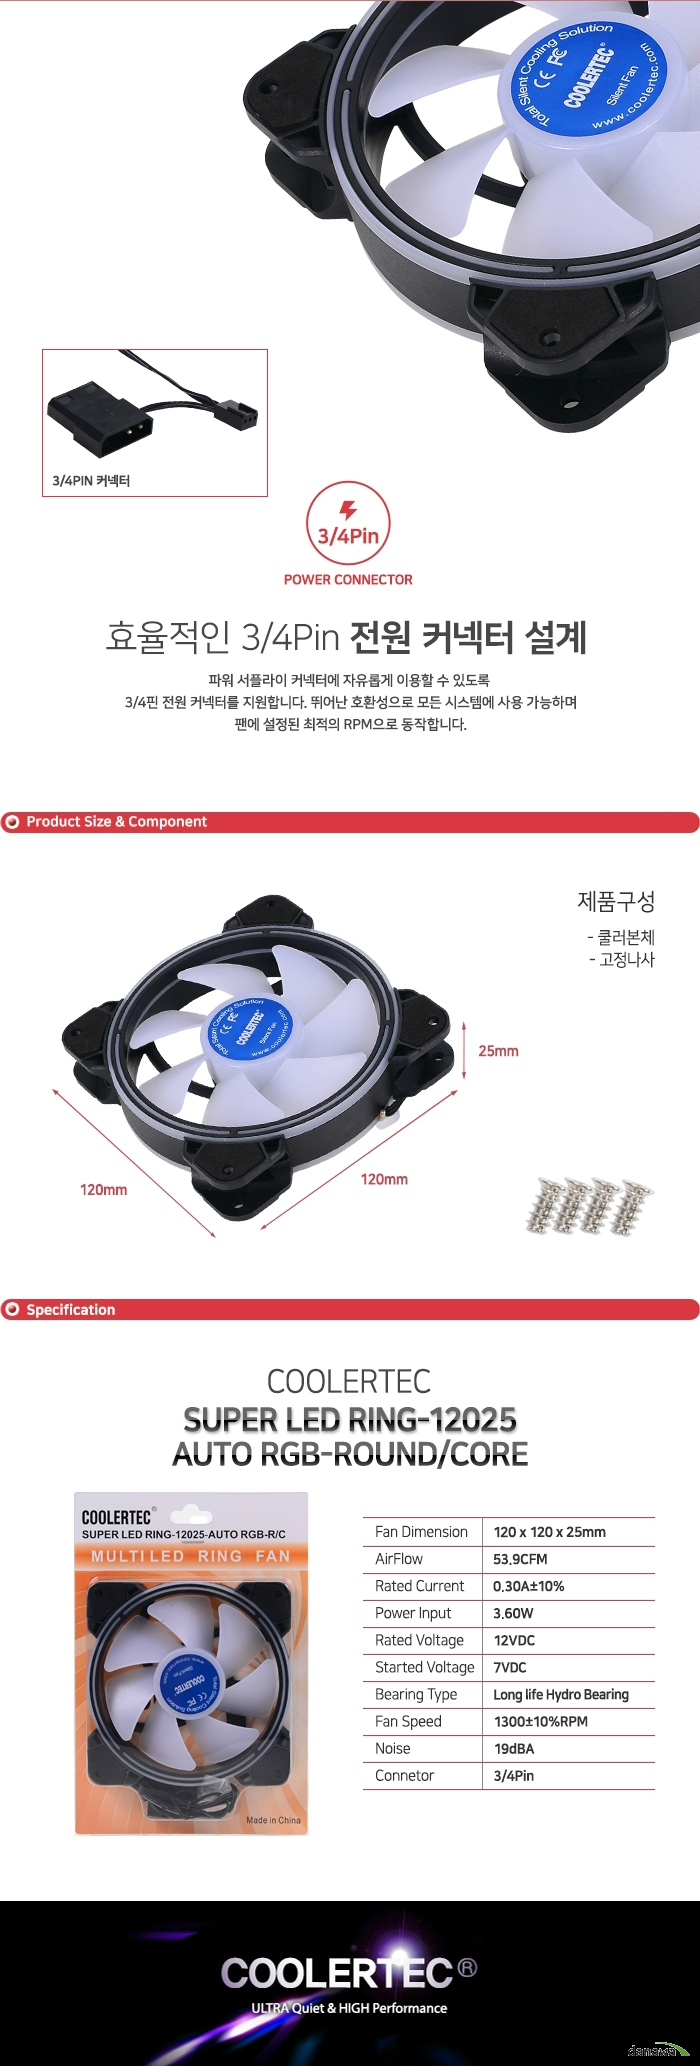 COOLERTEC SUPER LED RING-12025-AUTO RGB-R/C